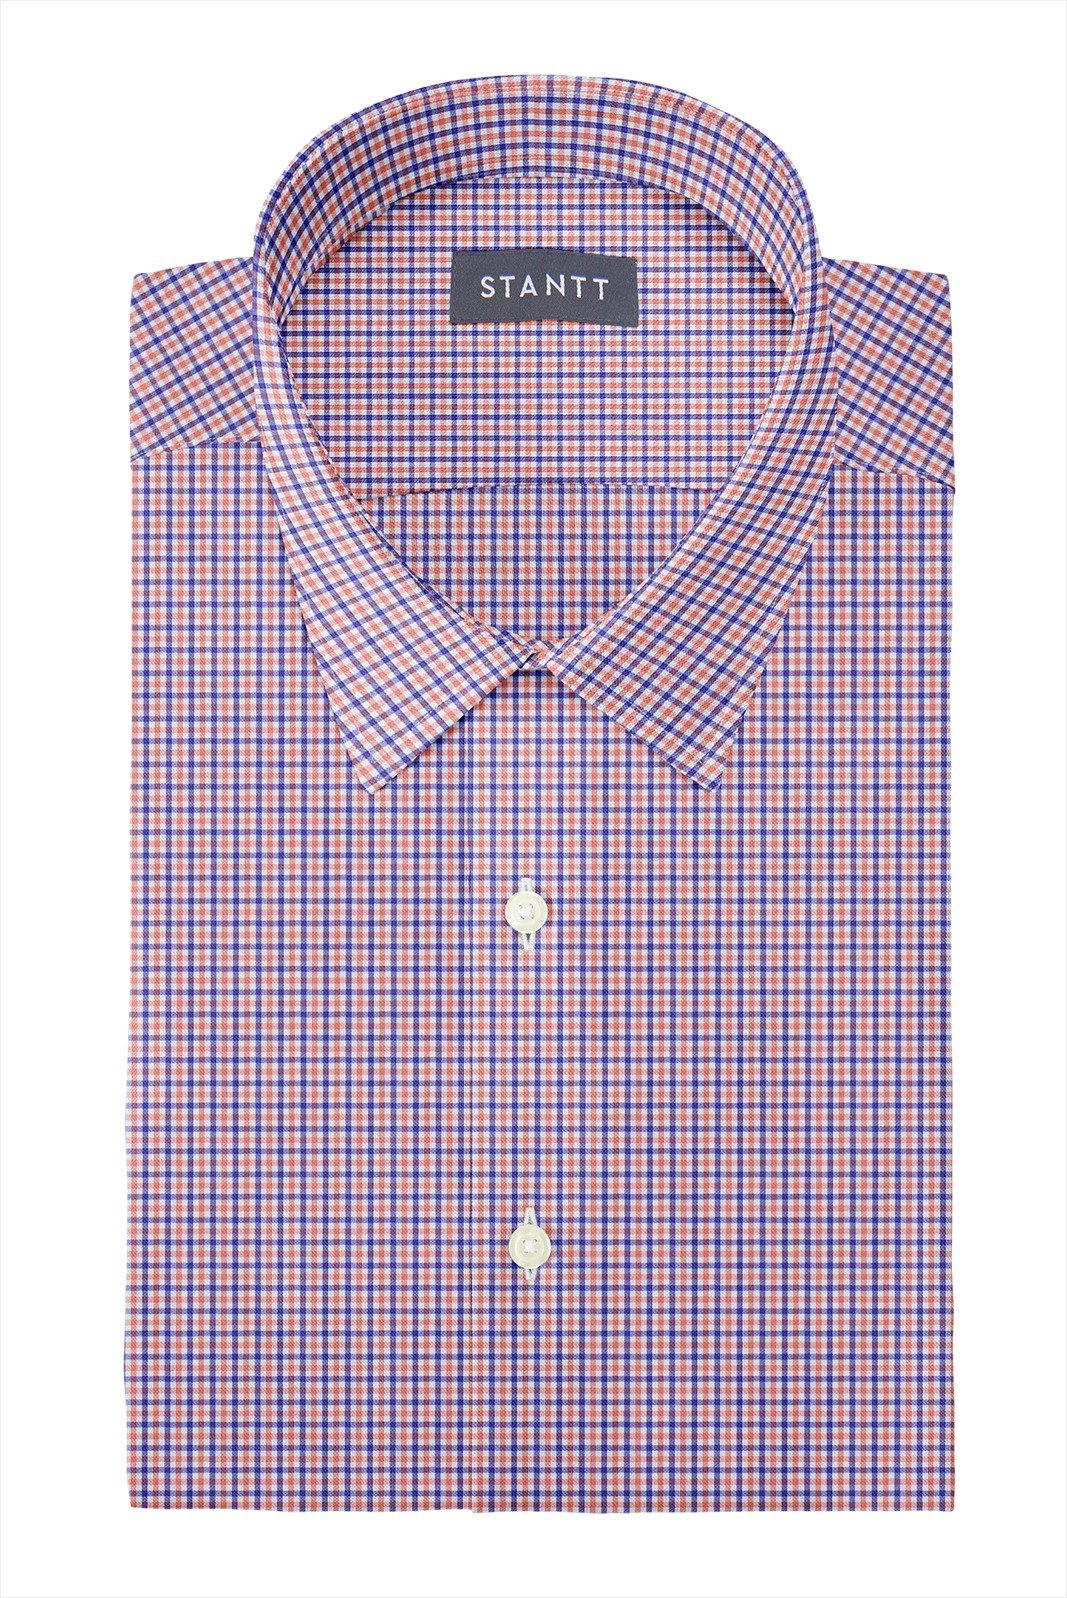 Orange and Blue Mini Tattersall: Semi-Spread Collar, Barrel Cuff